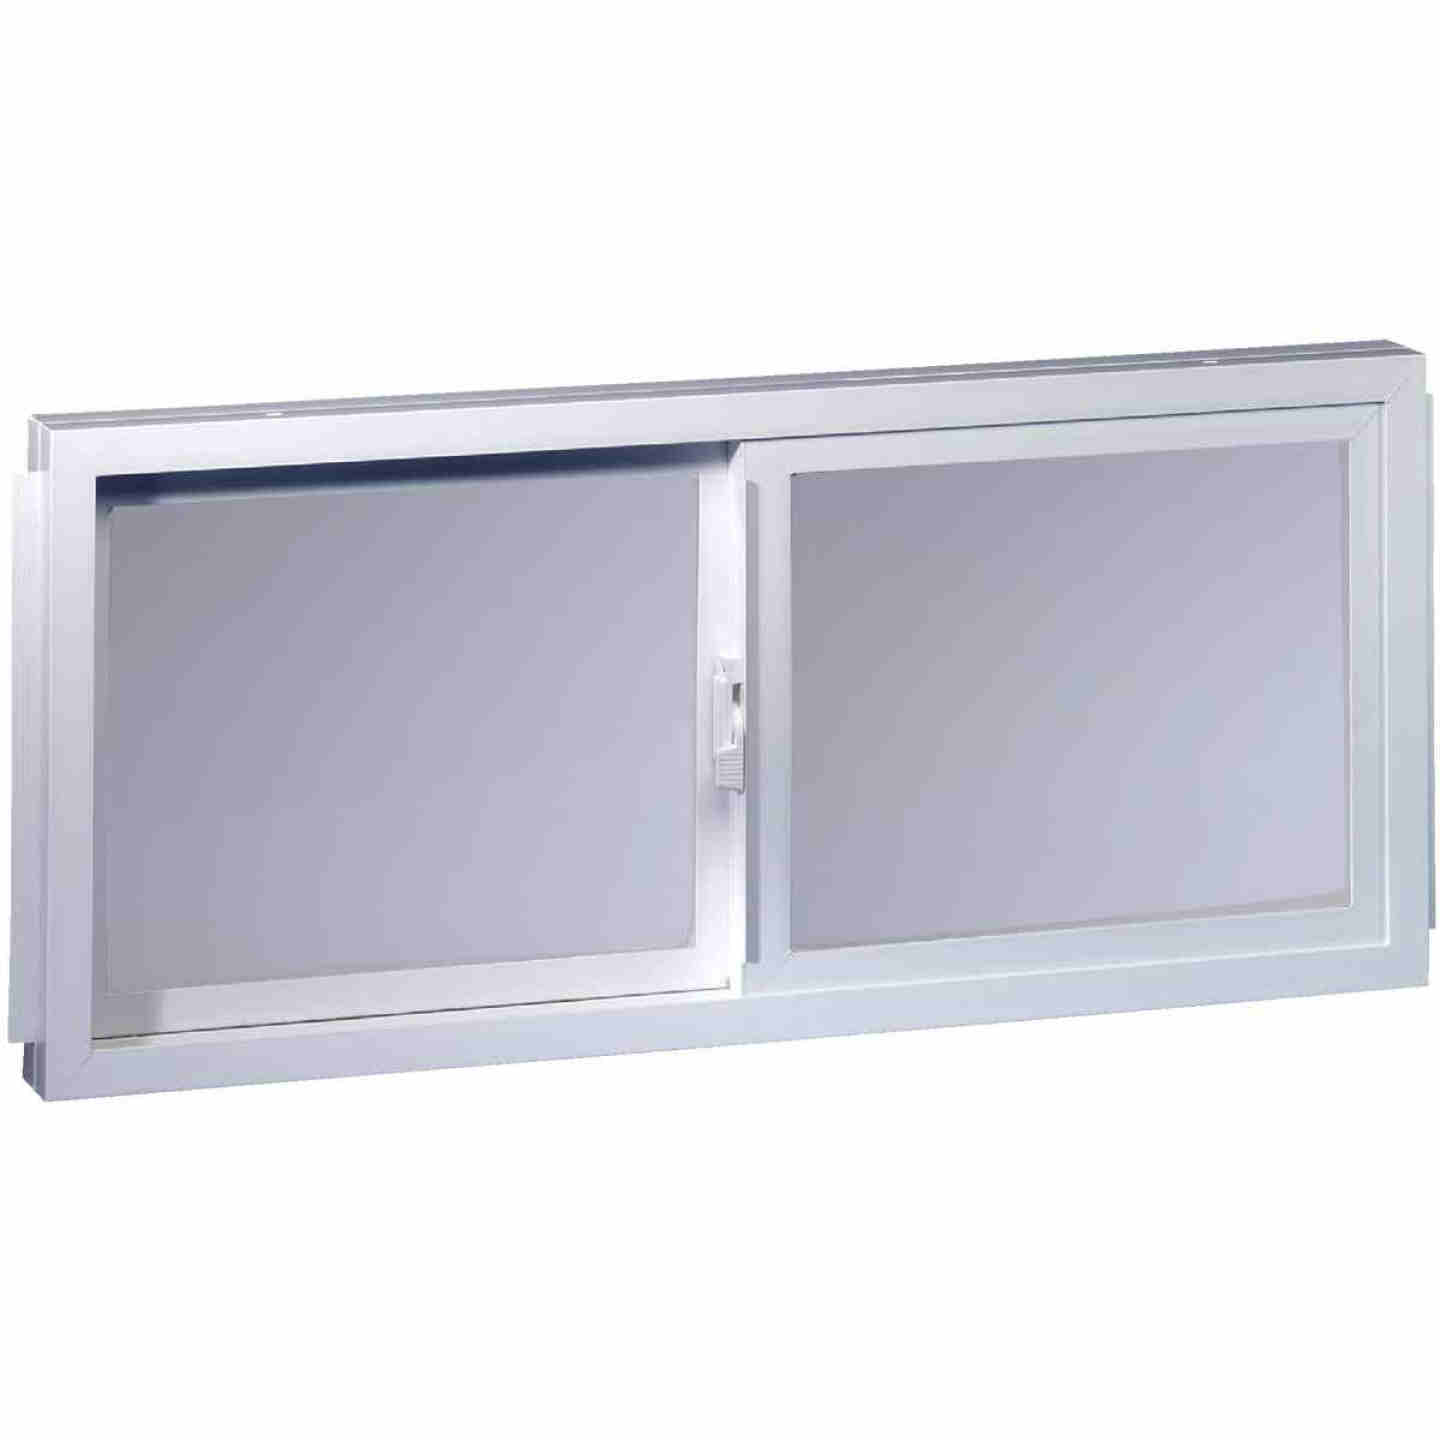 Northview Aspen Glider 32 In. W. x 23-1/4 In. H. White PVC Basement Window Image 1